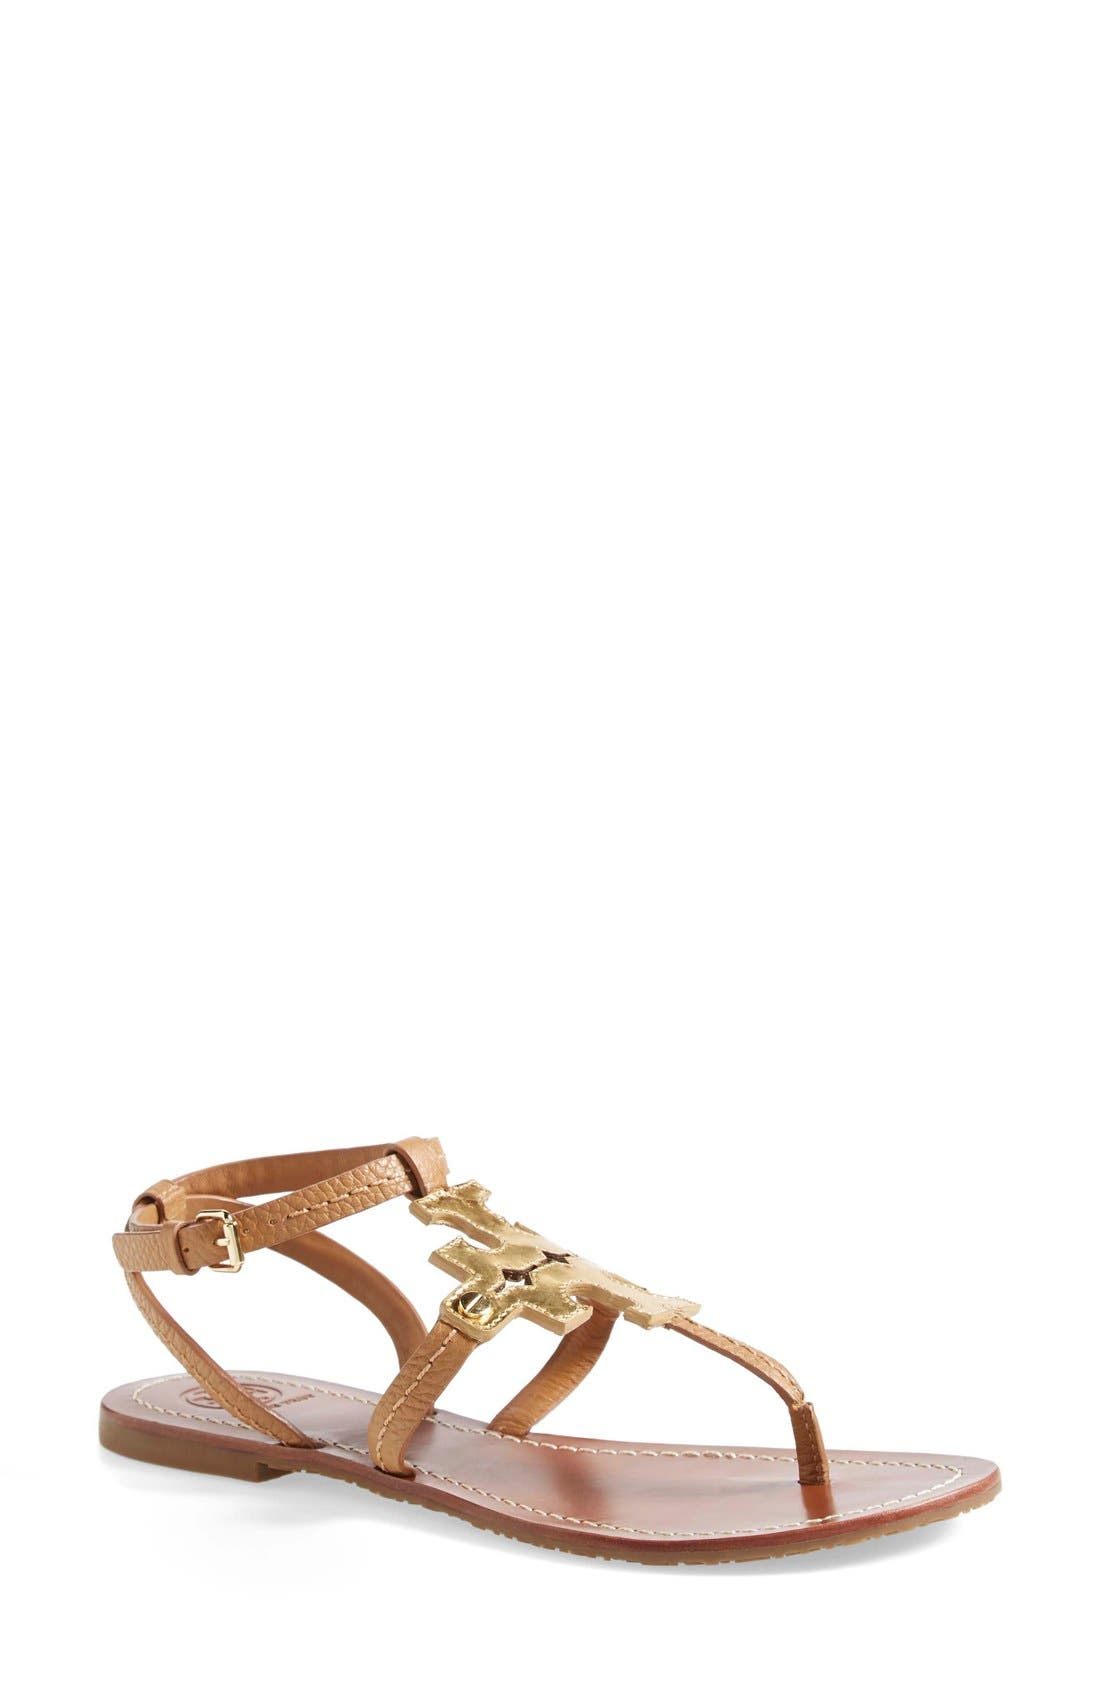 Main Image - Tory Burch 'Chandler' Leather Sandal (Women)